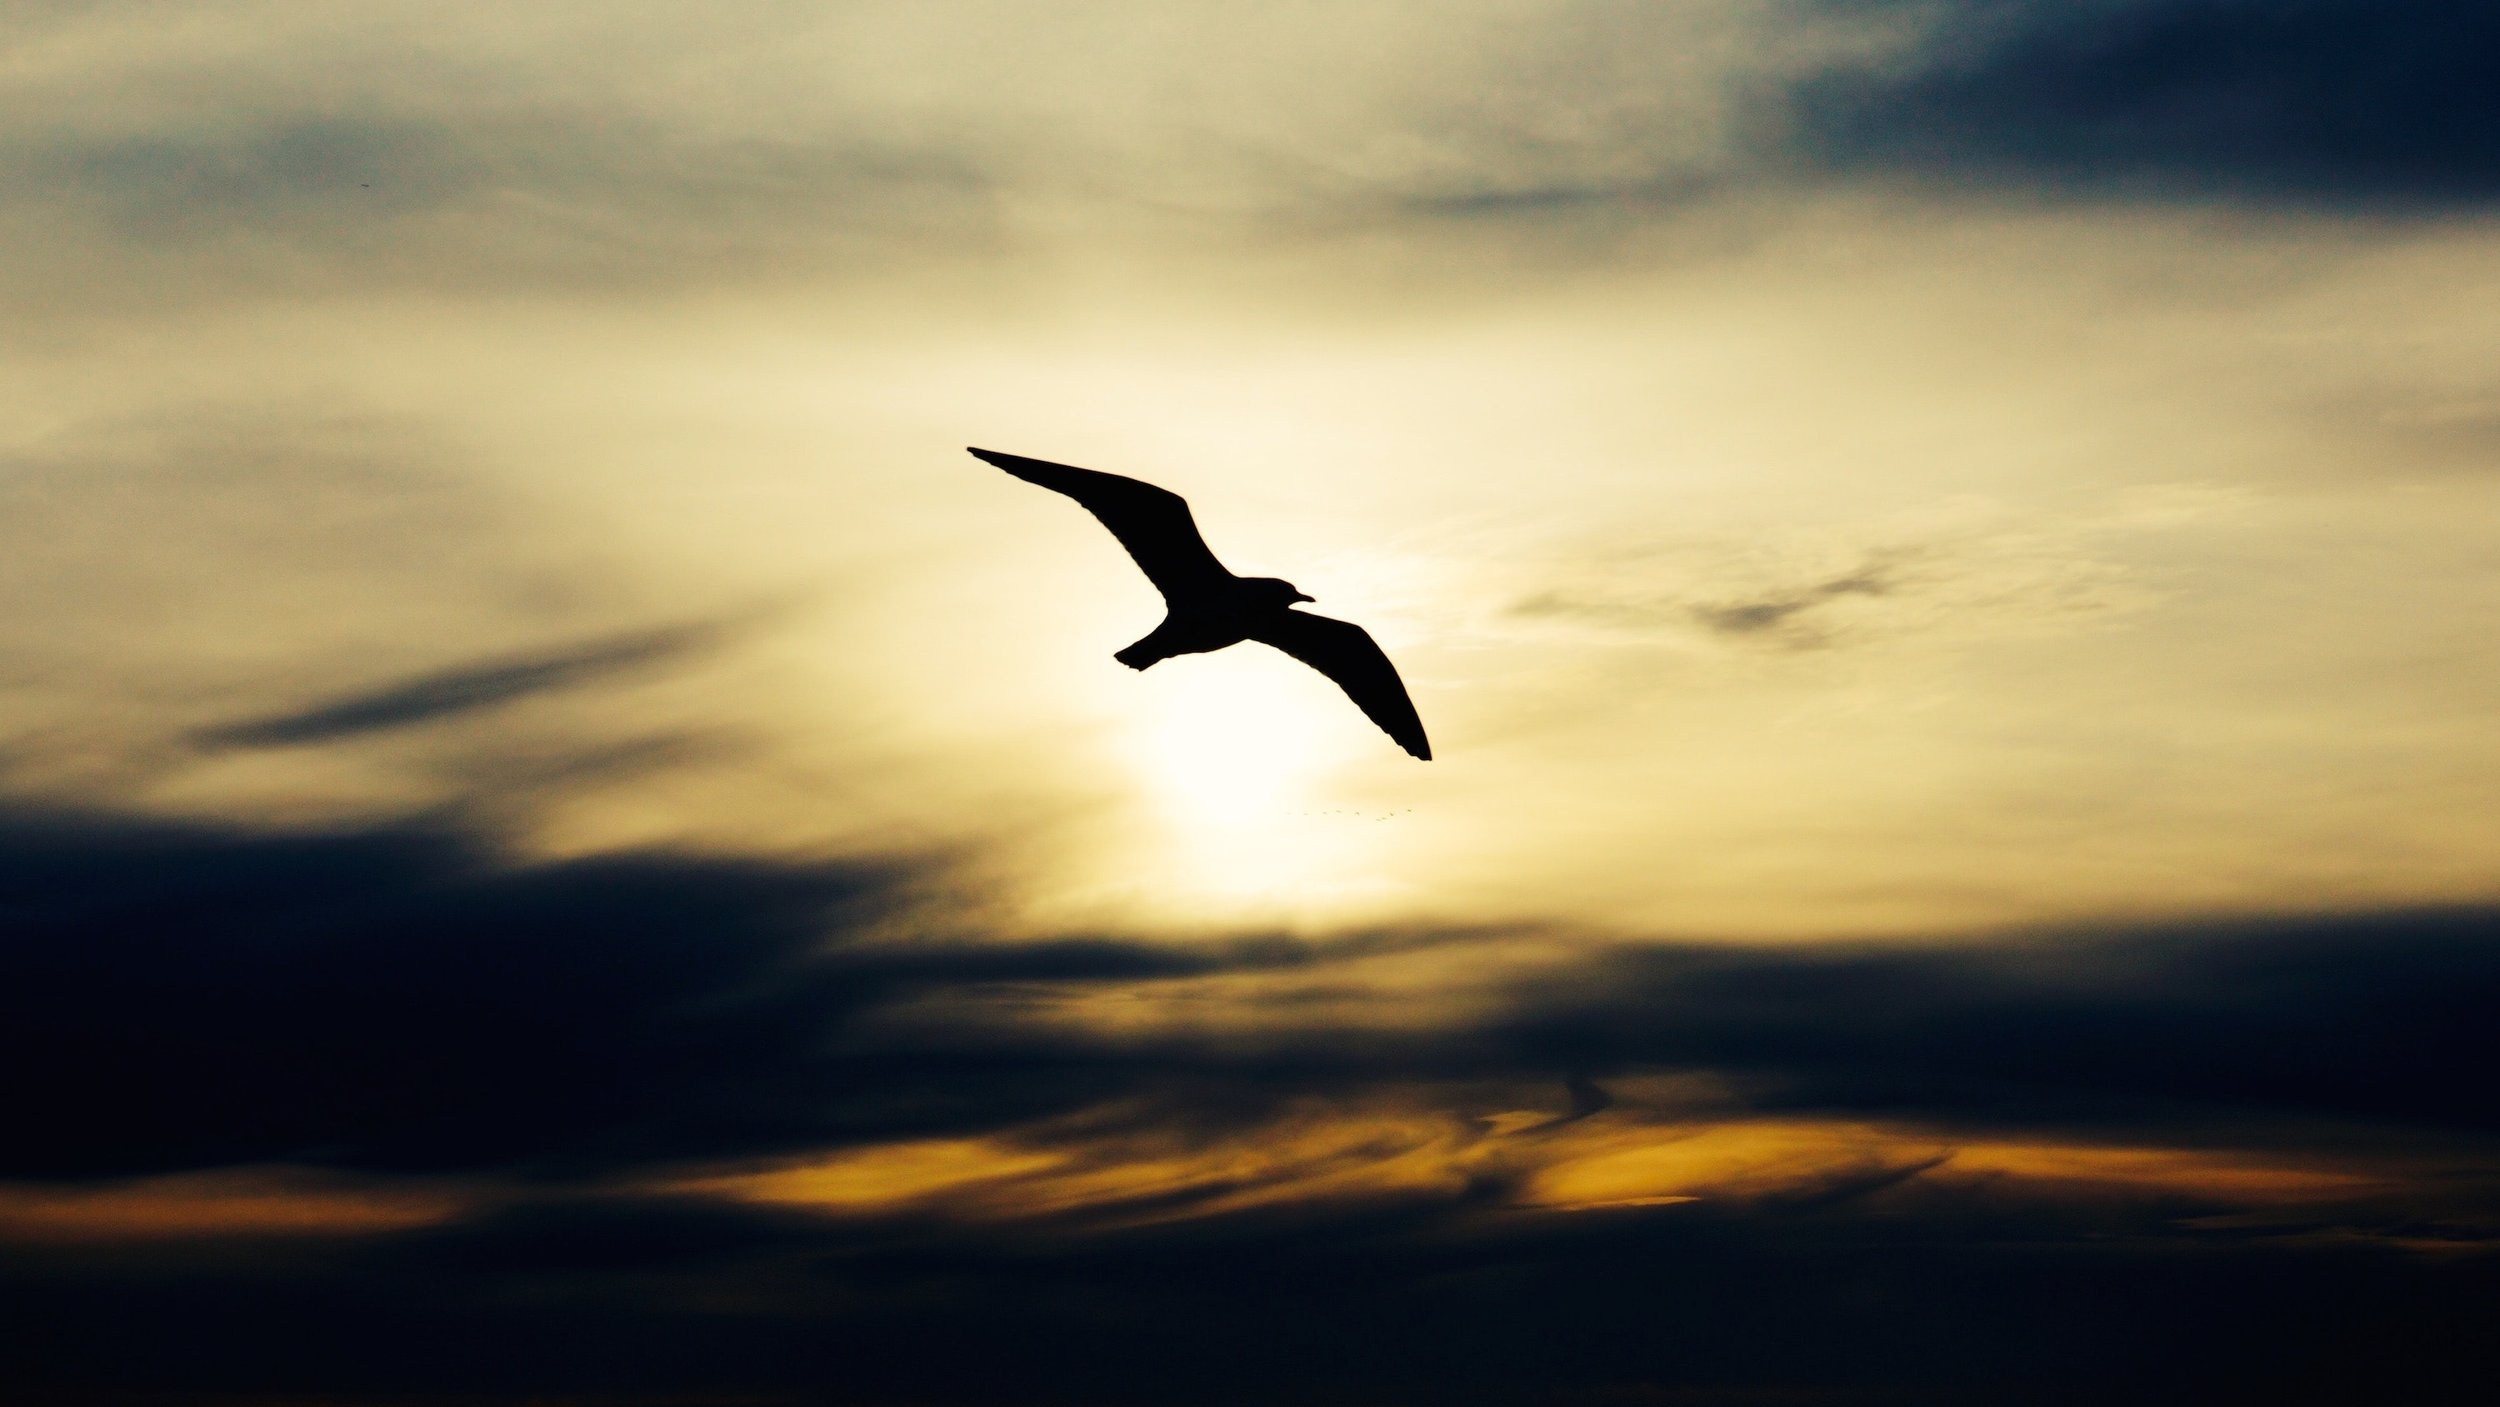 Seagull flying at sunrise over the ocean with dark tones.jpeg